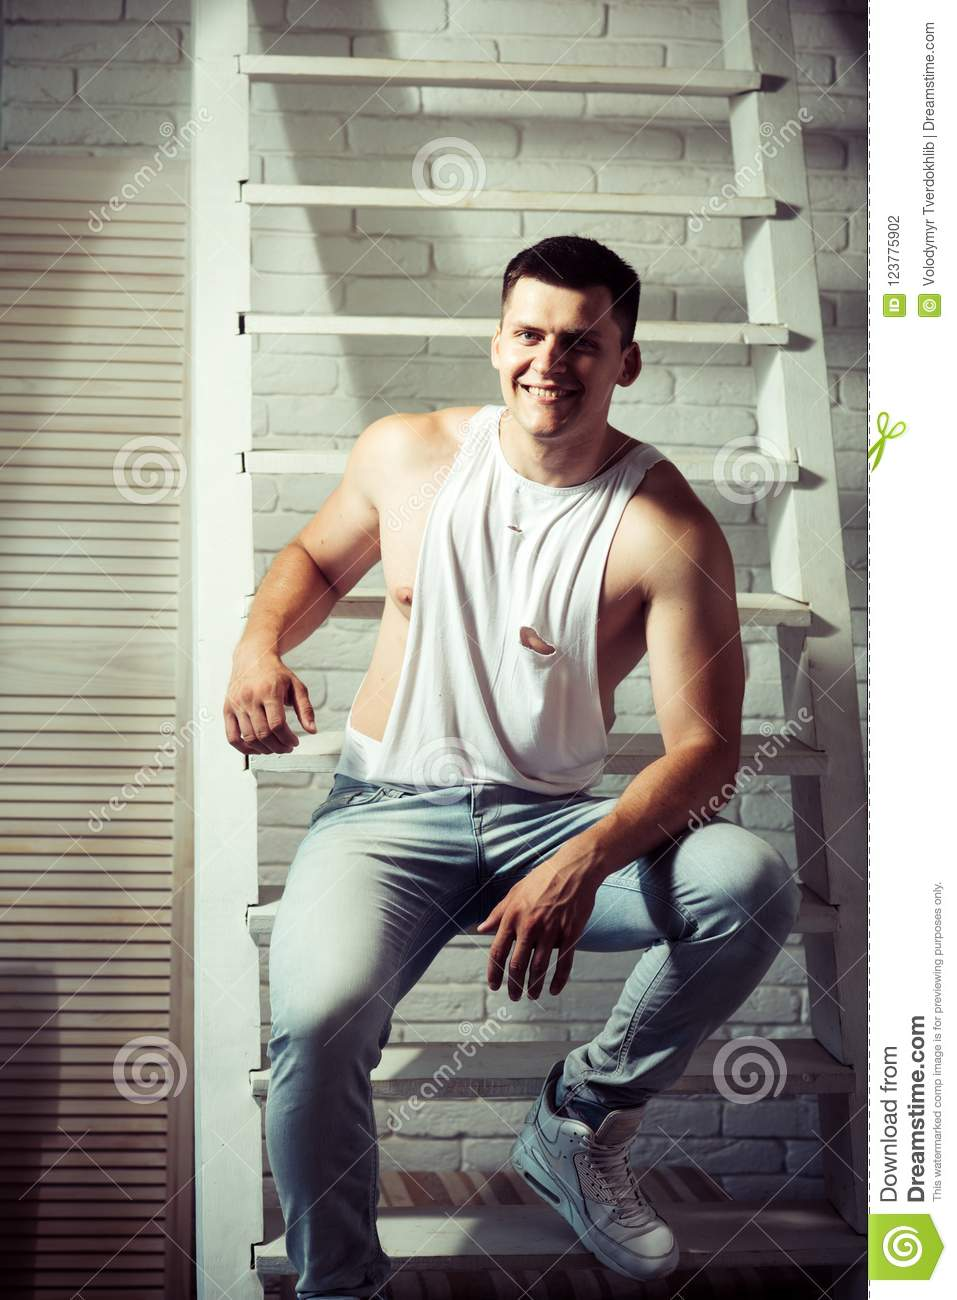 2fbac3c6b6447 Young man smile on ladder. Guy in trendy tank top and jeans fashion.  Athletic